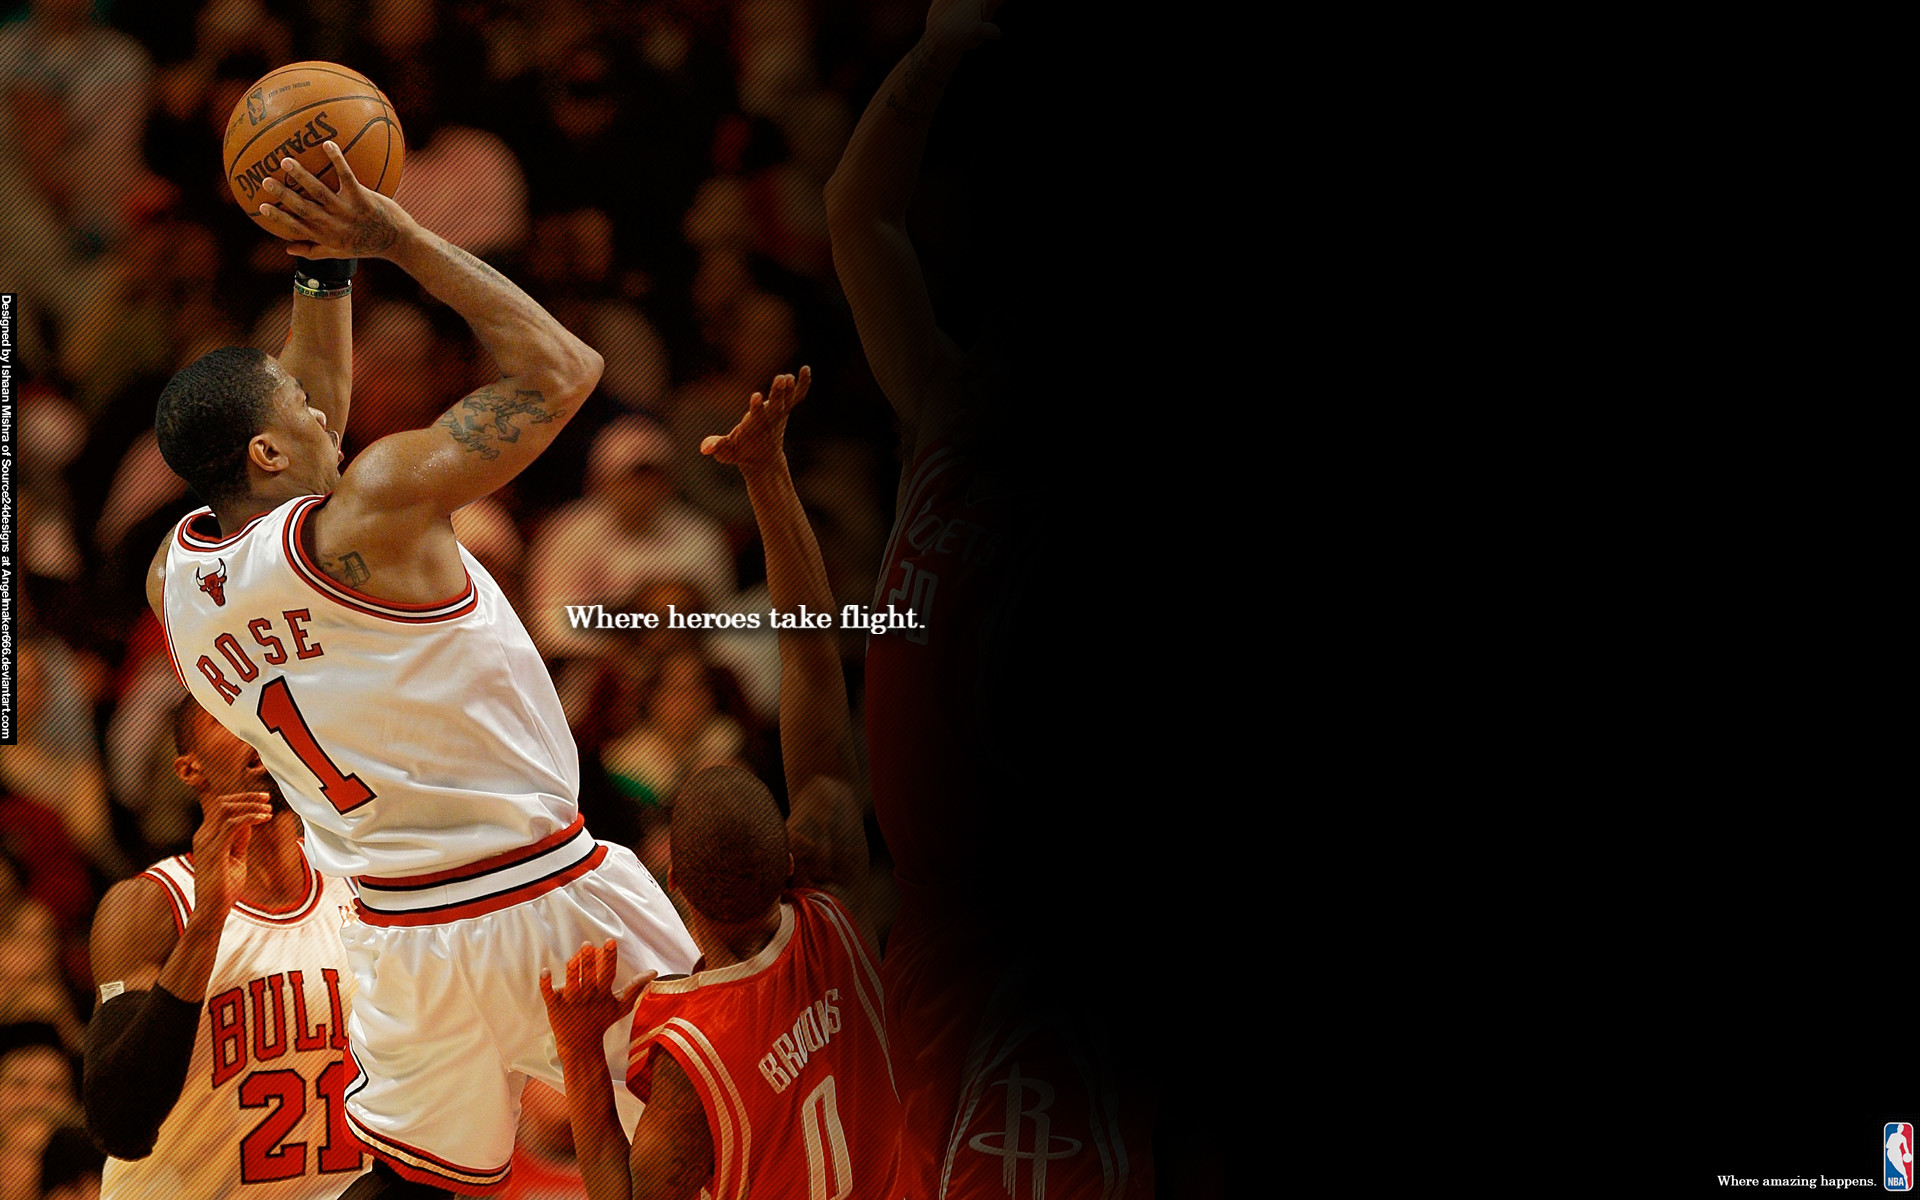 dcf461853c78 2000x1530 Derrick-Rose-Wallpapers-HD-Widescreen